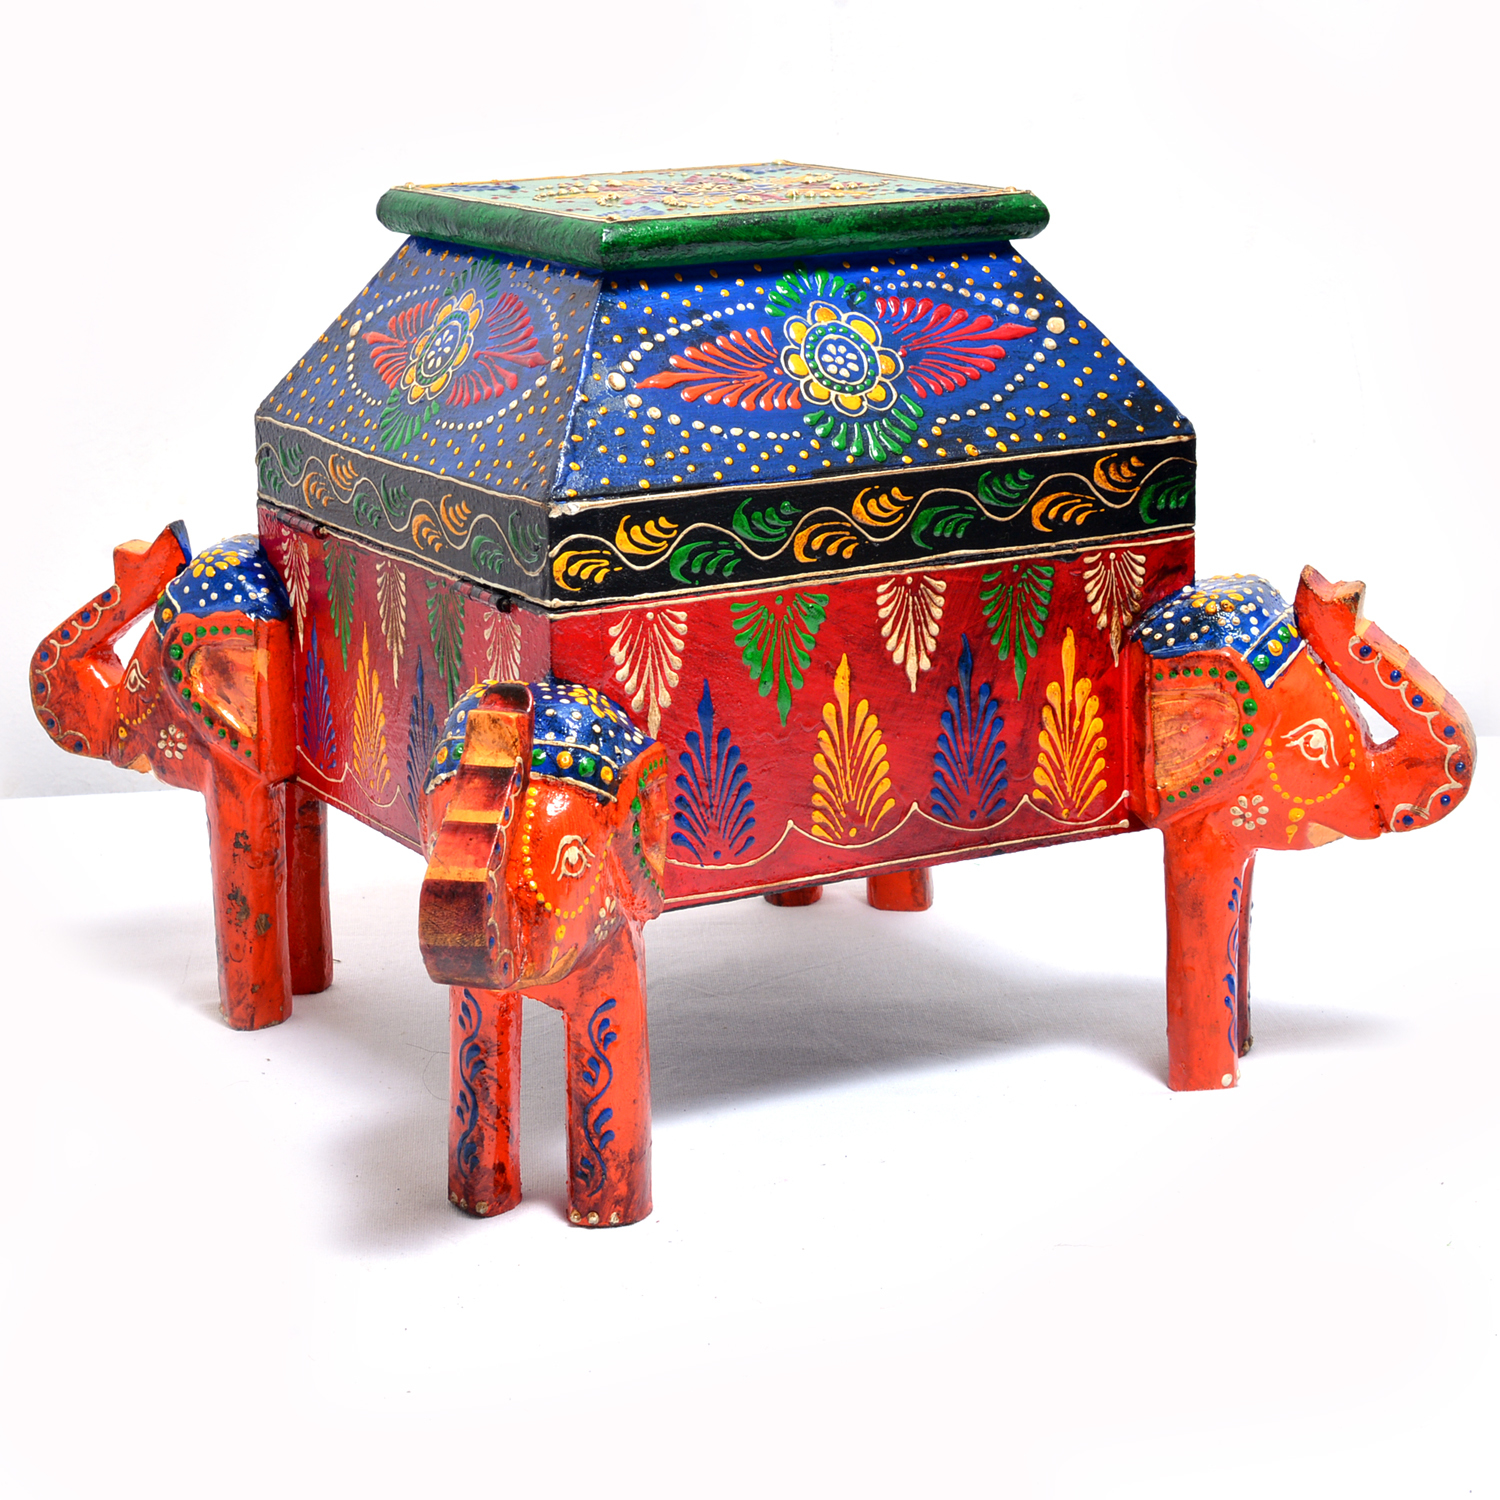 Antique Indian Hand Craft Wooden Elephant Dry Fruit Box